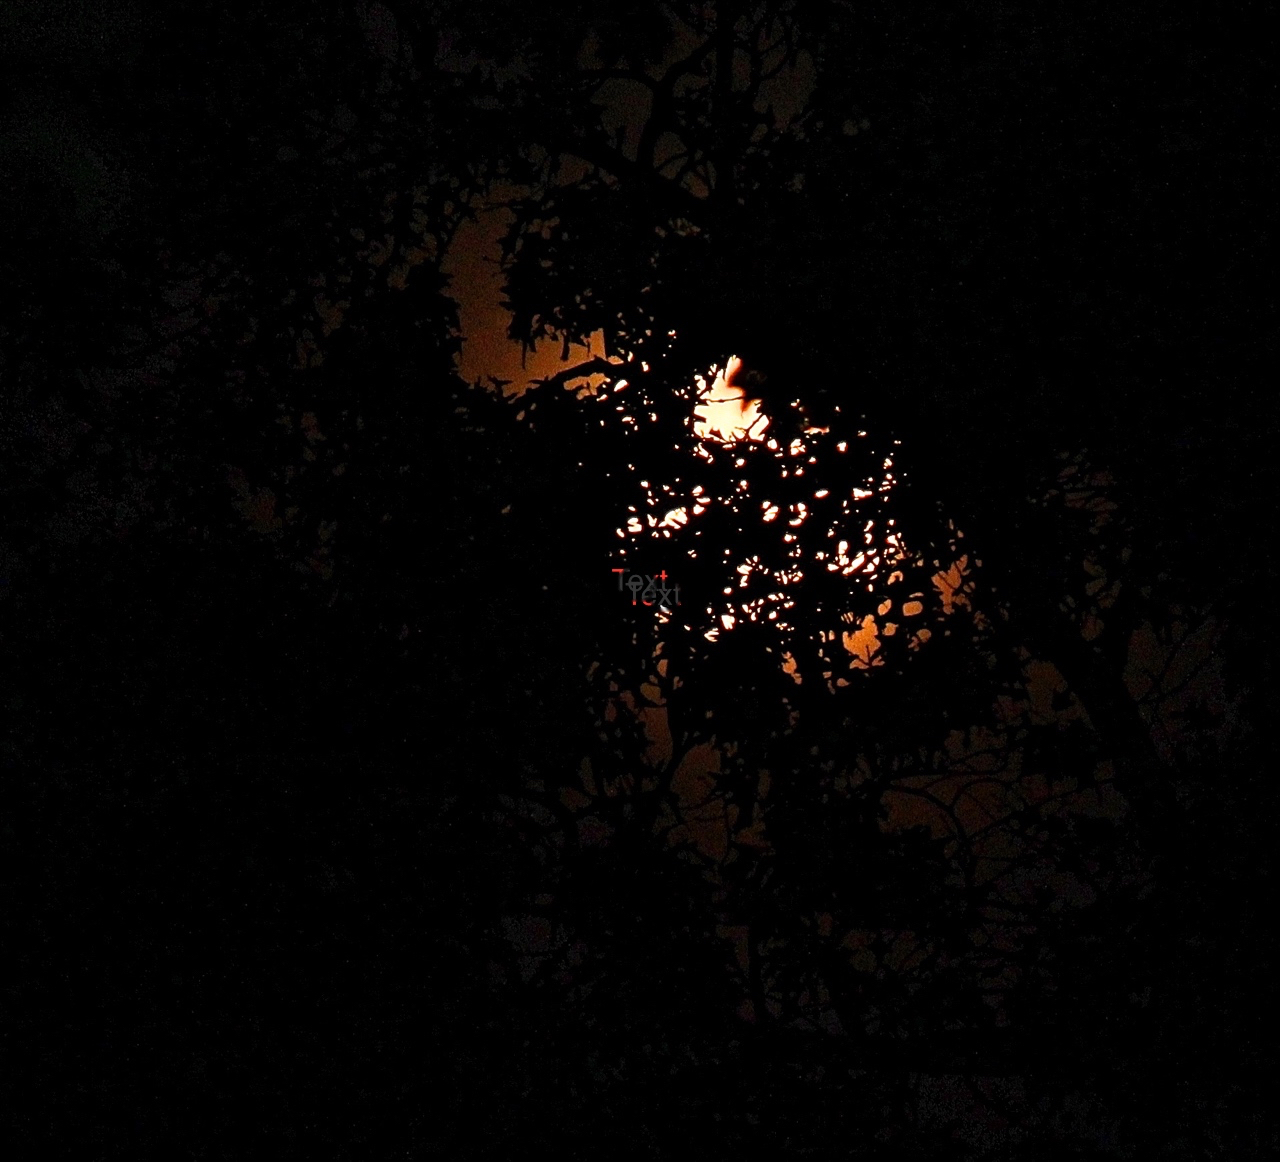 Full Moon in branches